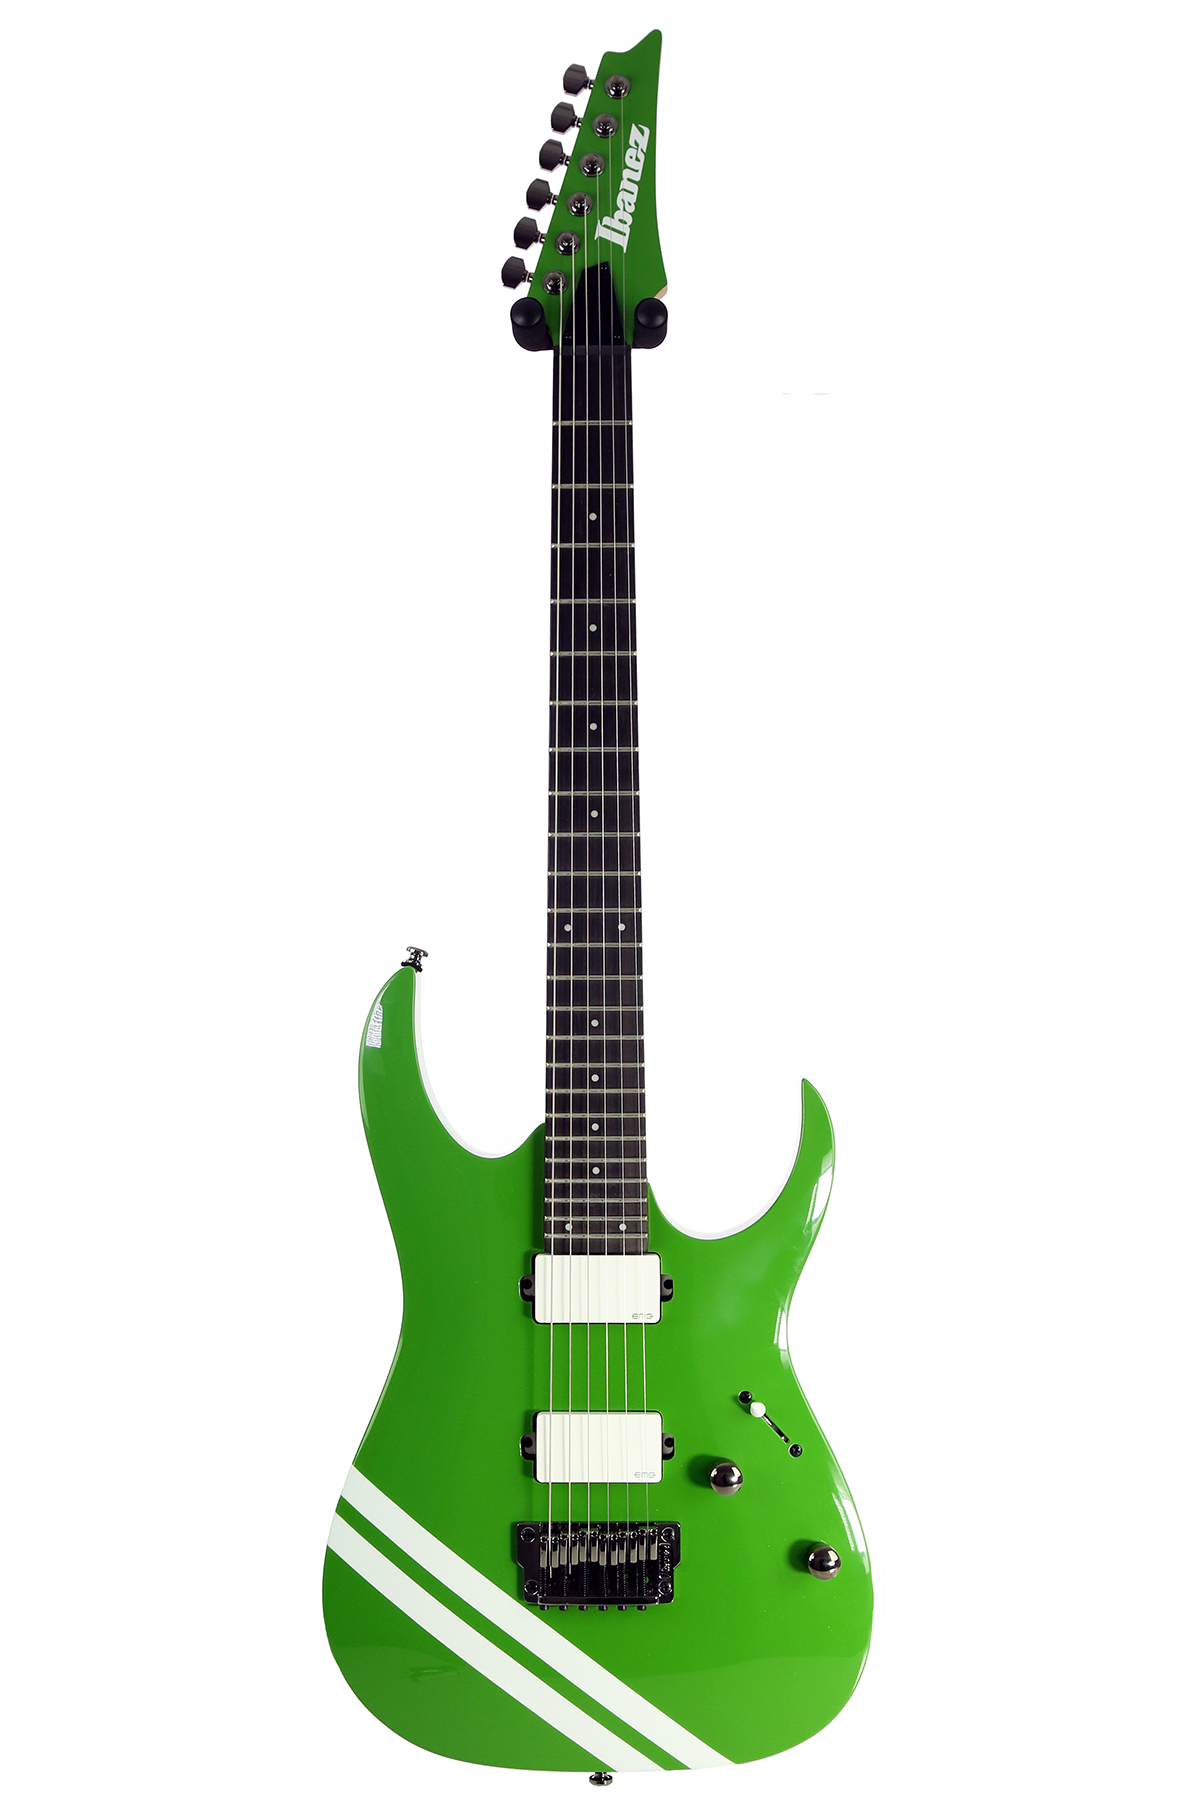 brand new ibanez bbm20 jb brubaker siganture electric guitar new york music emporium. Black Bedroom Furniture Sets. Home Design Ideas